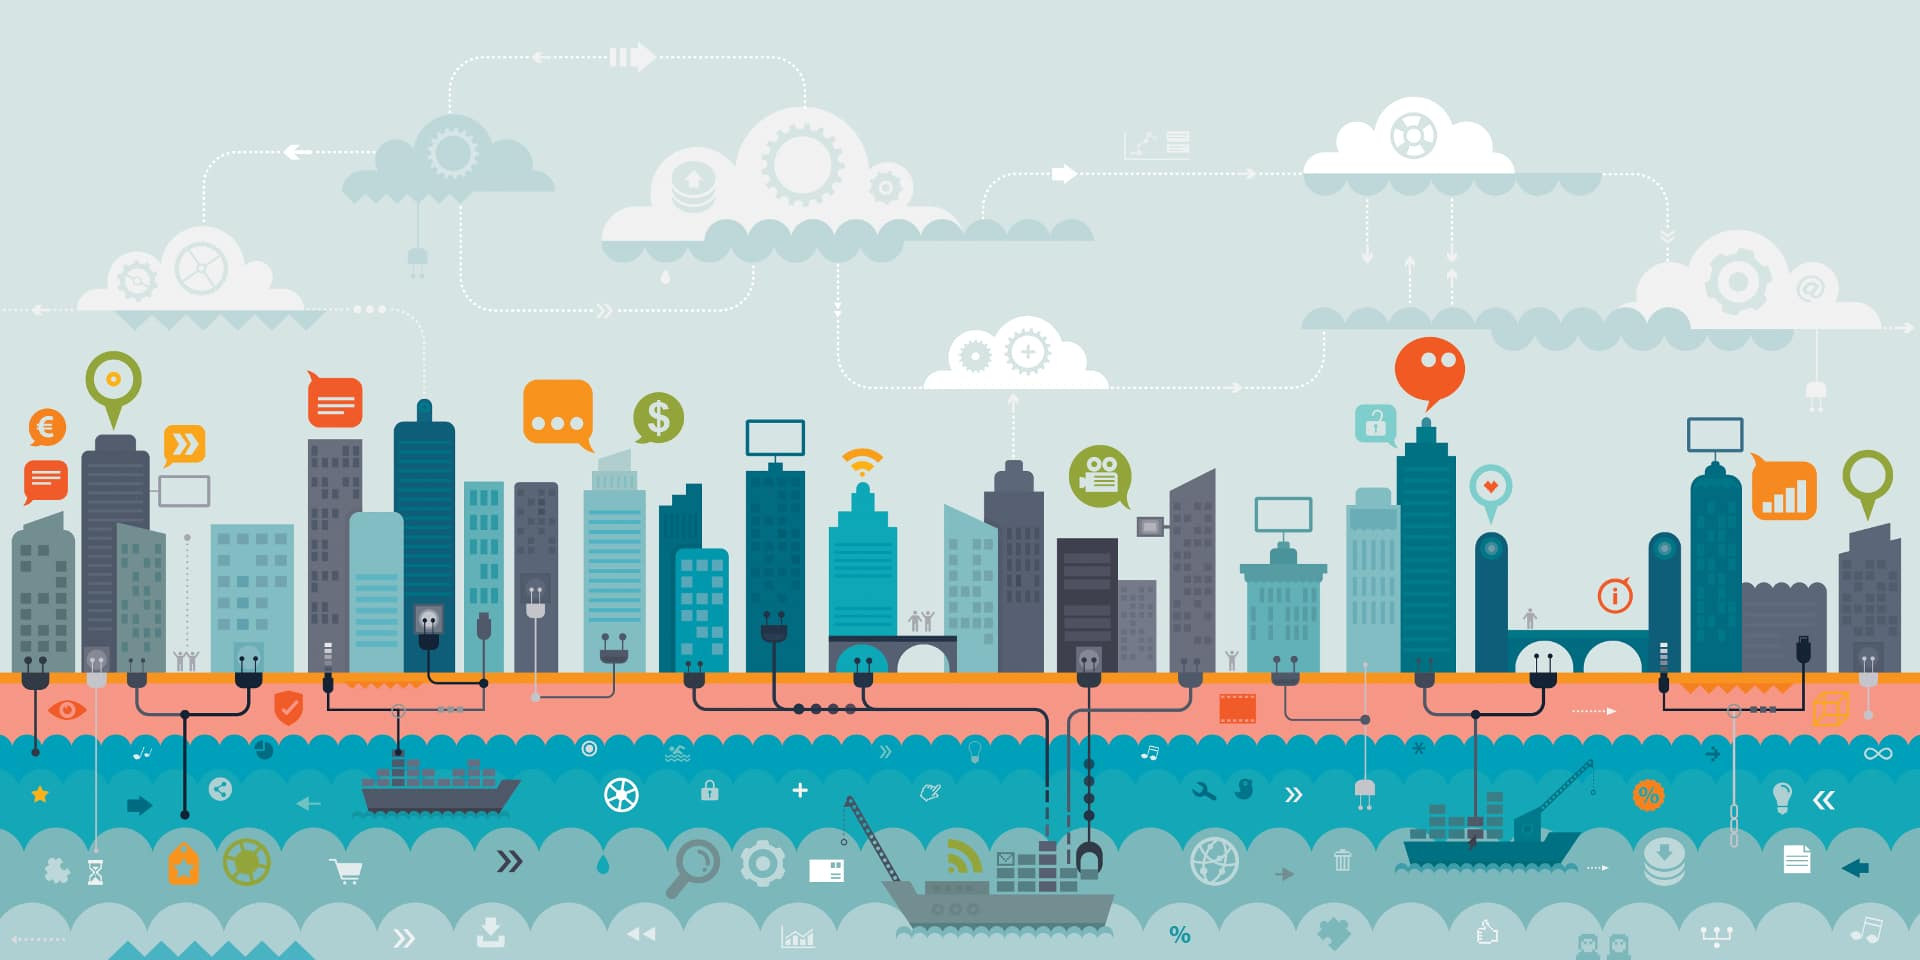 Messaging for the Internet of Things